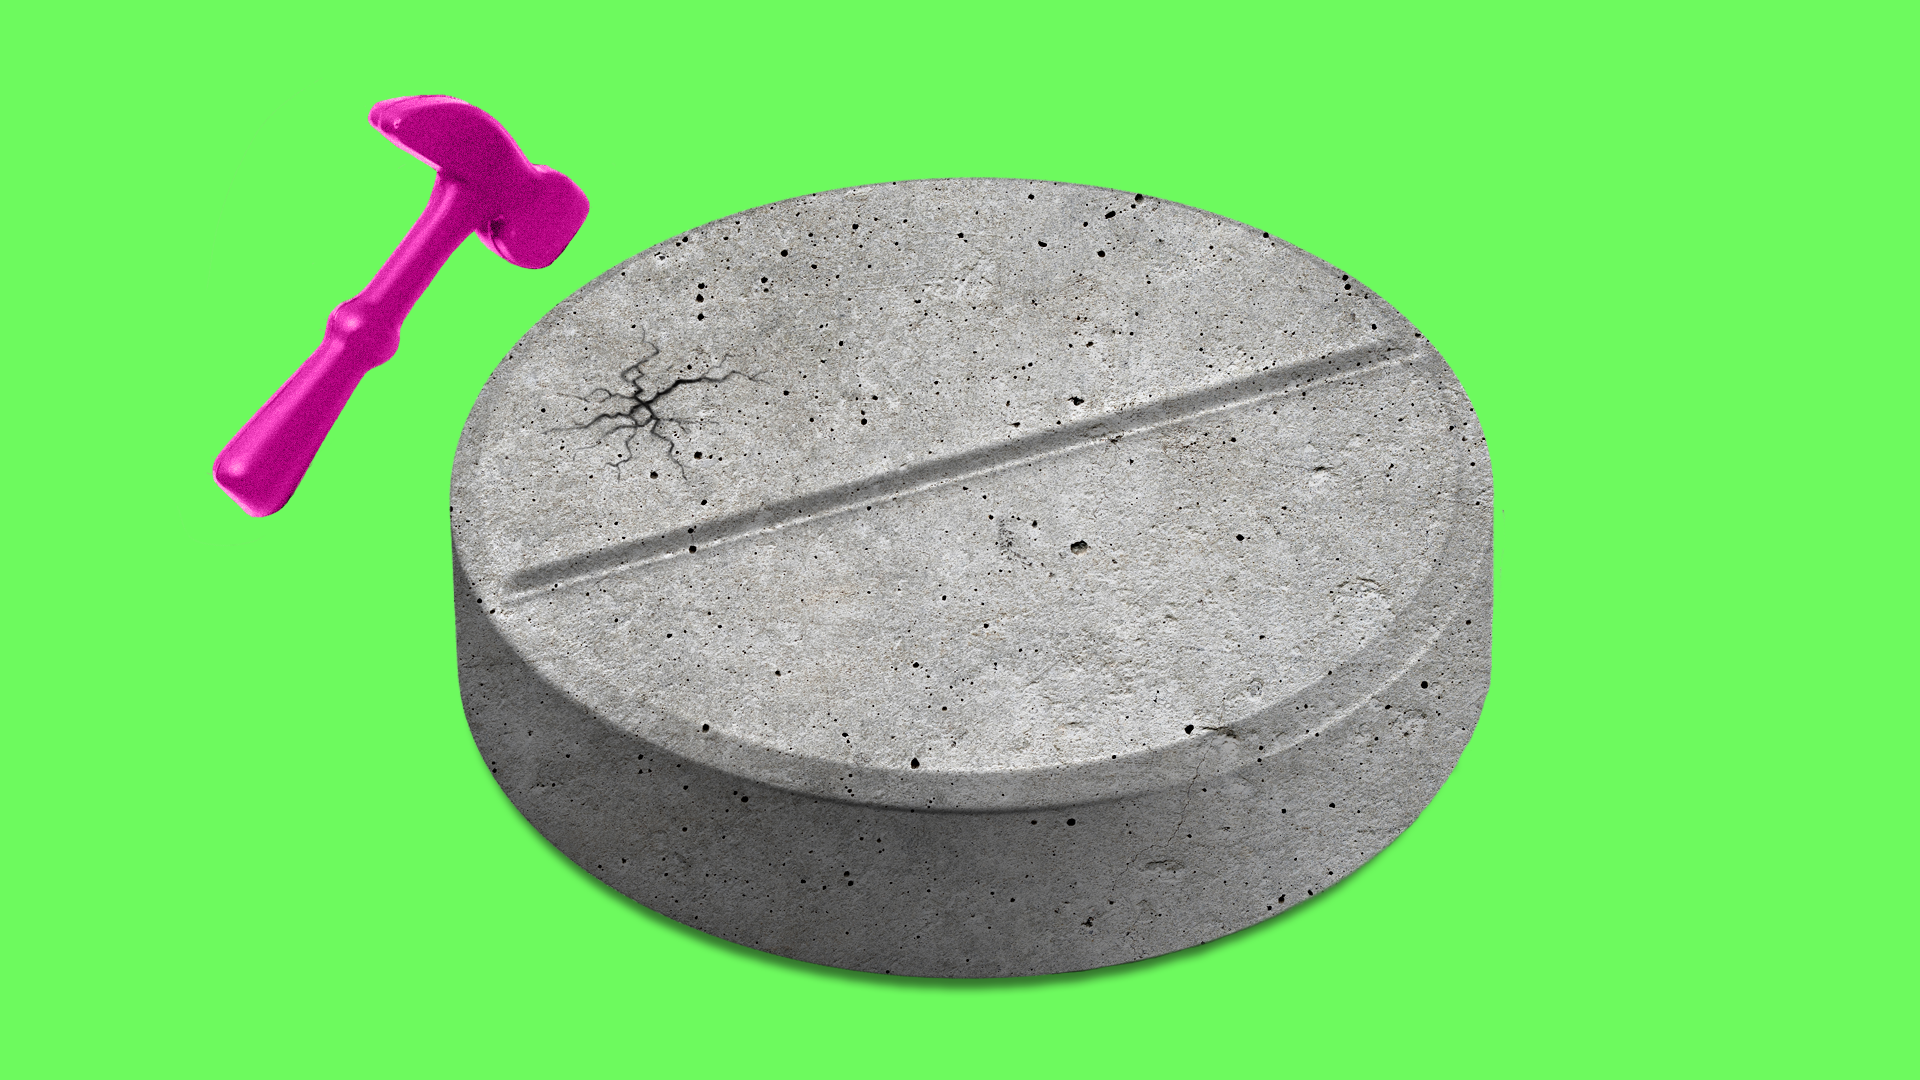 An illustration of a hammer and a concrete pill.